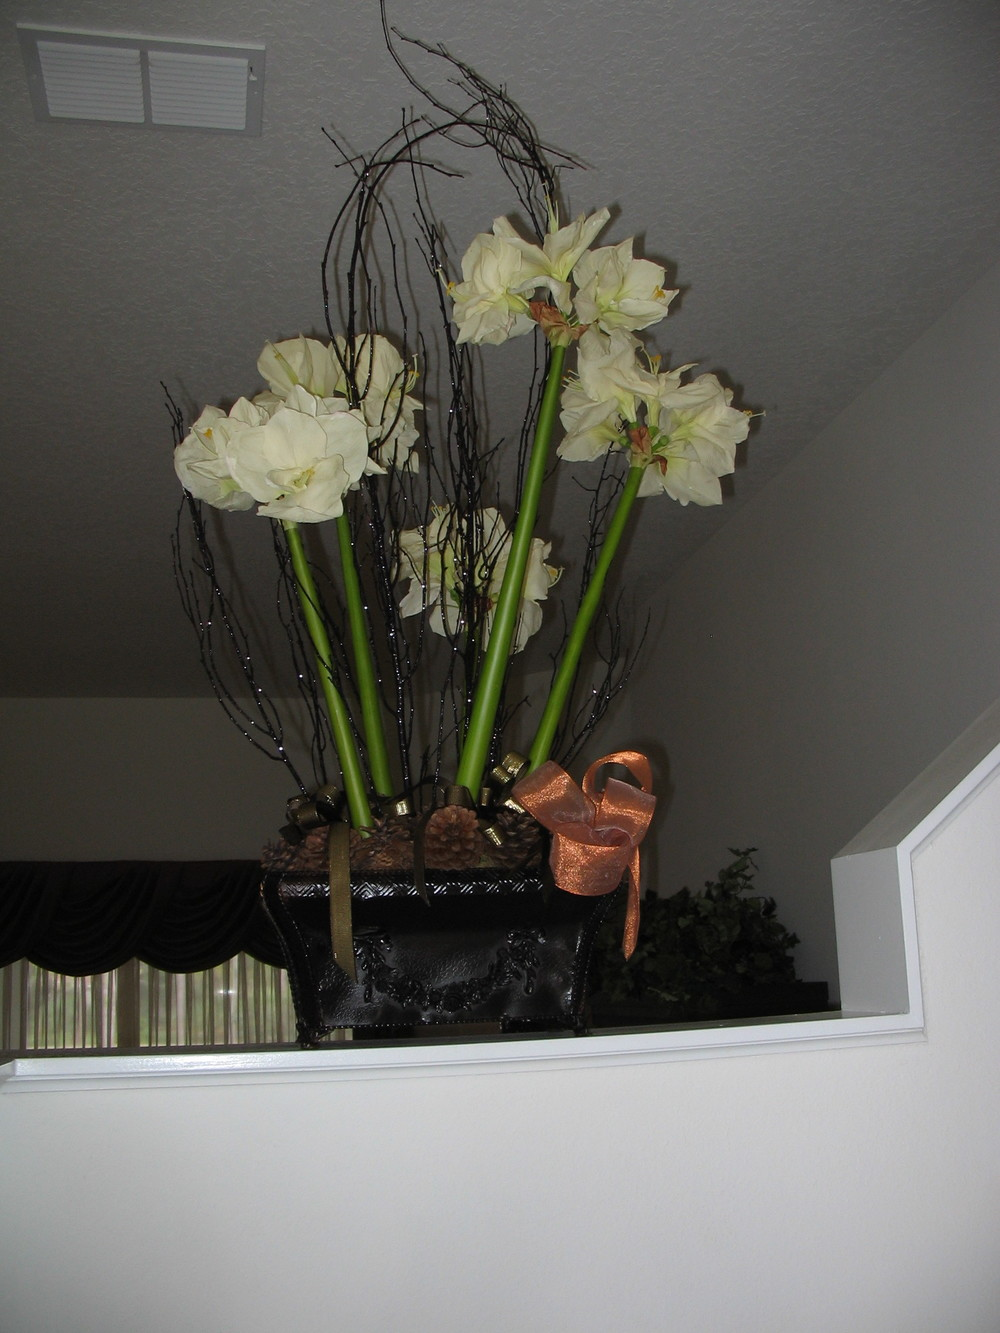 homedecor2007 042.jpg